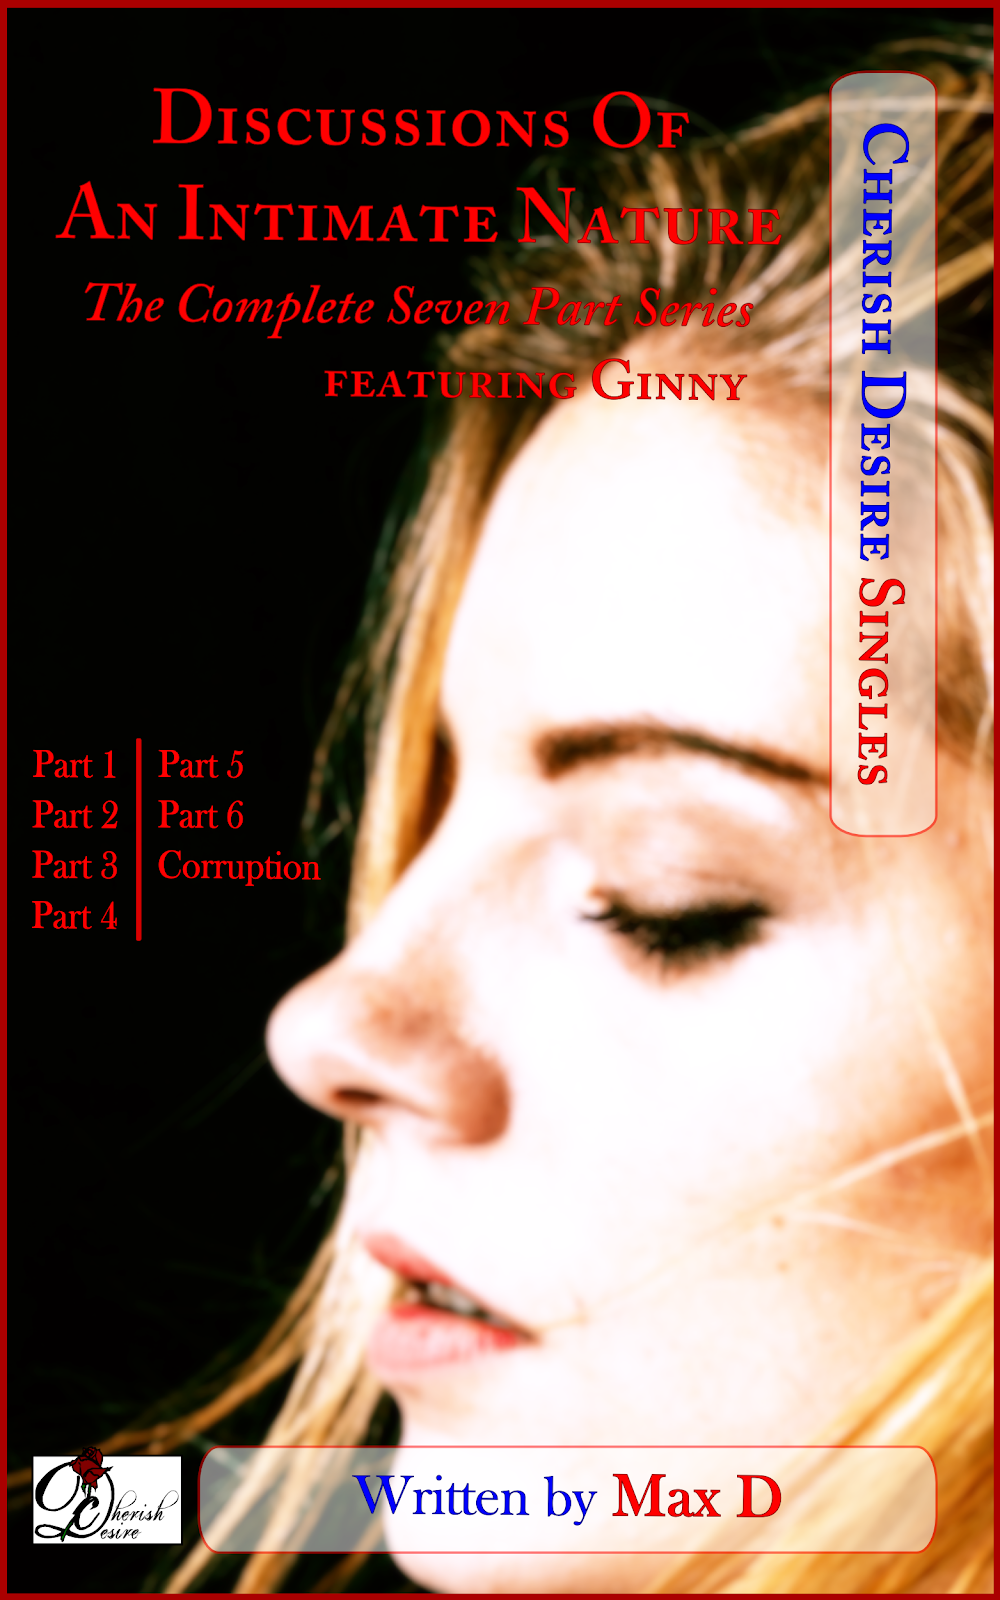 Cherish Desire Singles: Discussions Of An Intimate Nature (The Complete Seven Part Series) featuring Ginny, Ginny, Kendra, Alexi & Andrea, Tom, Max D, erotica